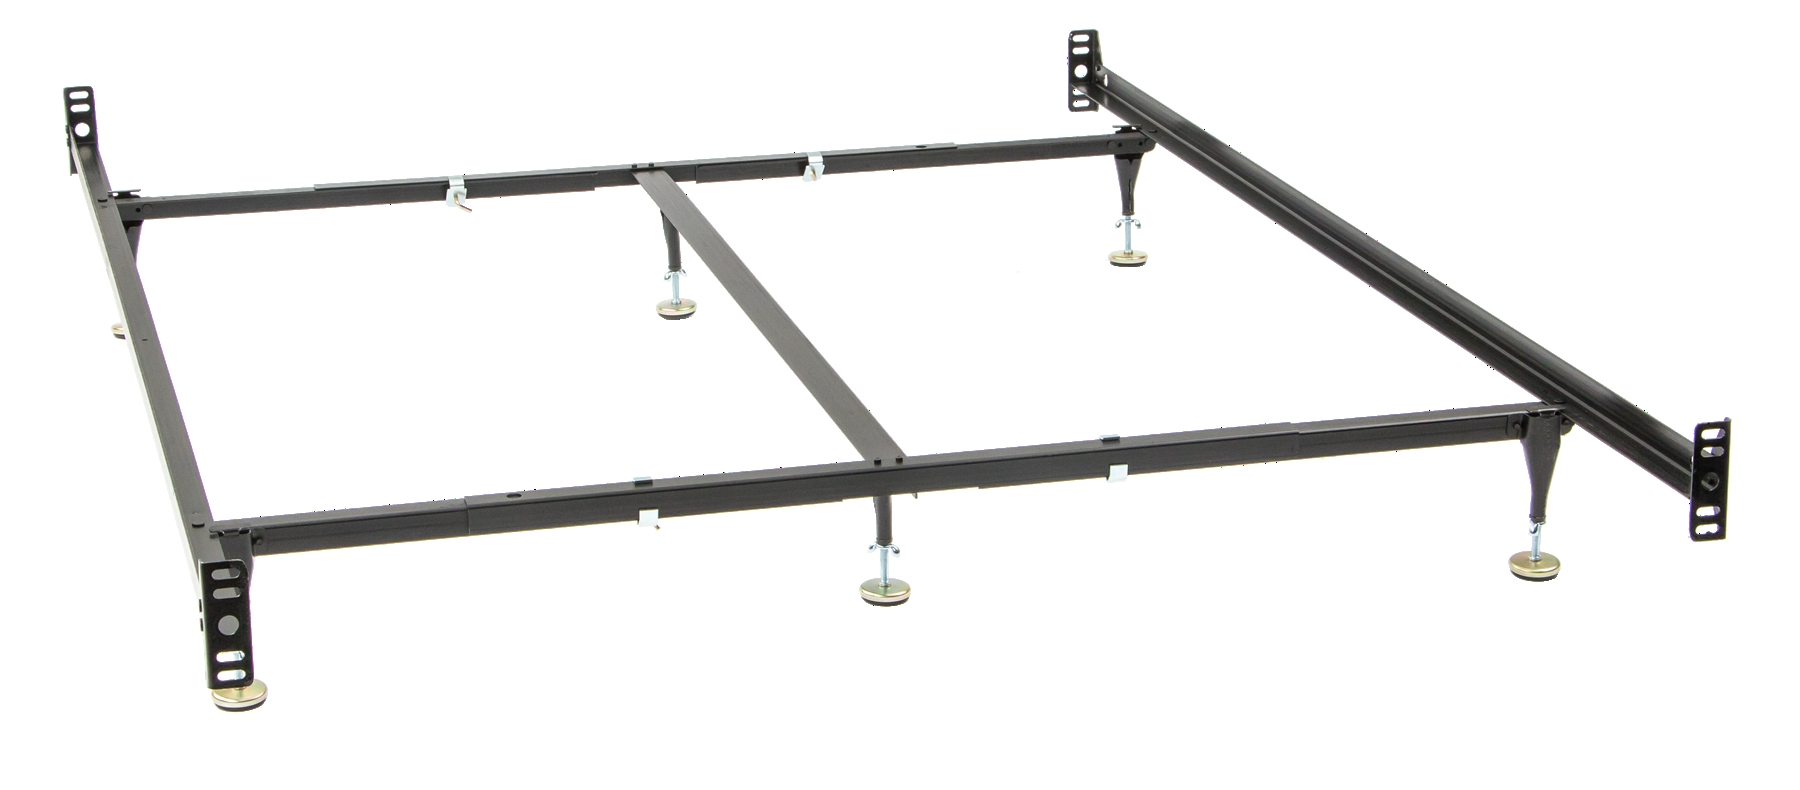 Permalink to Queen Size Bed Frame Rails